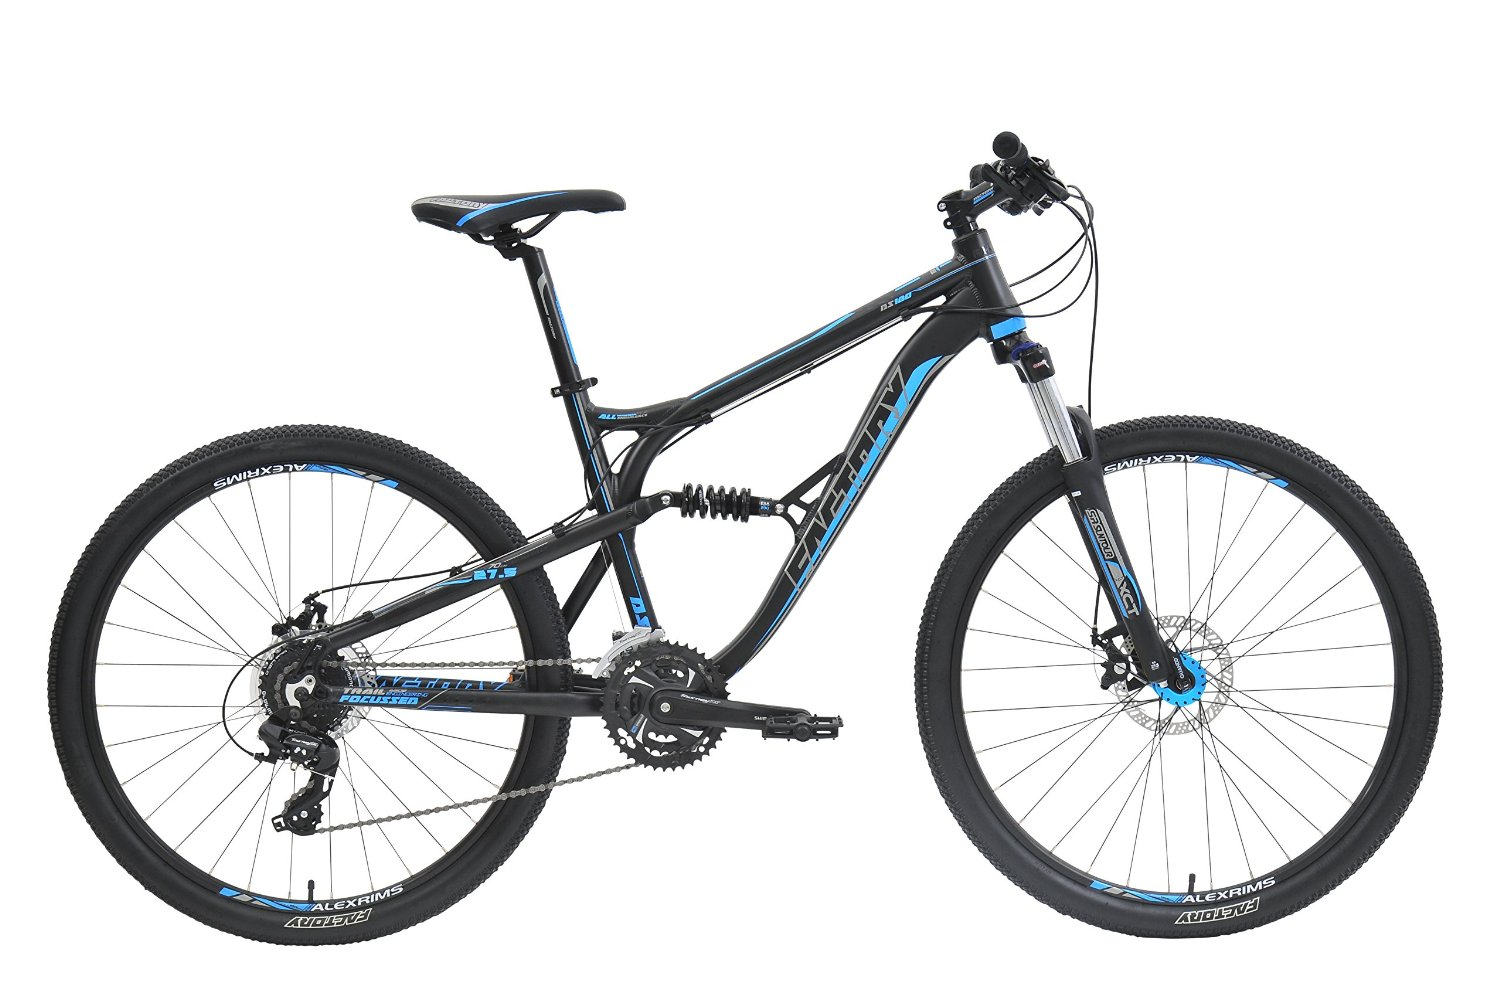 Factory DS180-27.5 Dual Suspension Mountain Bike